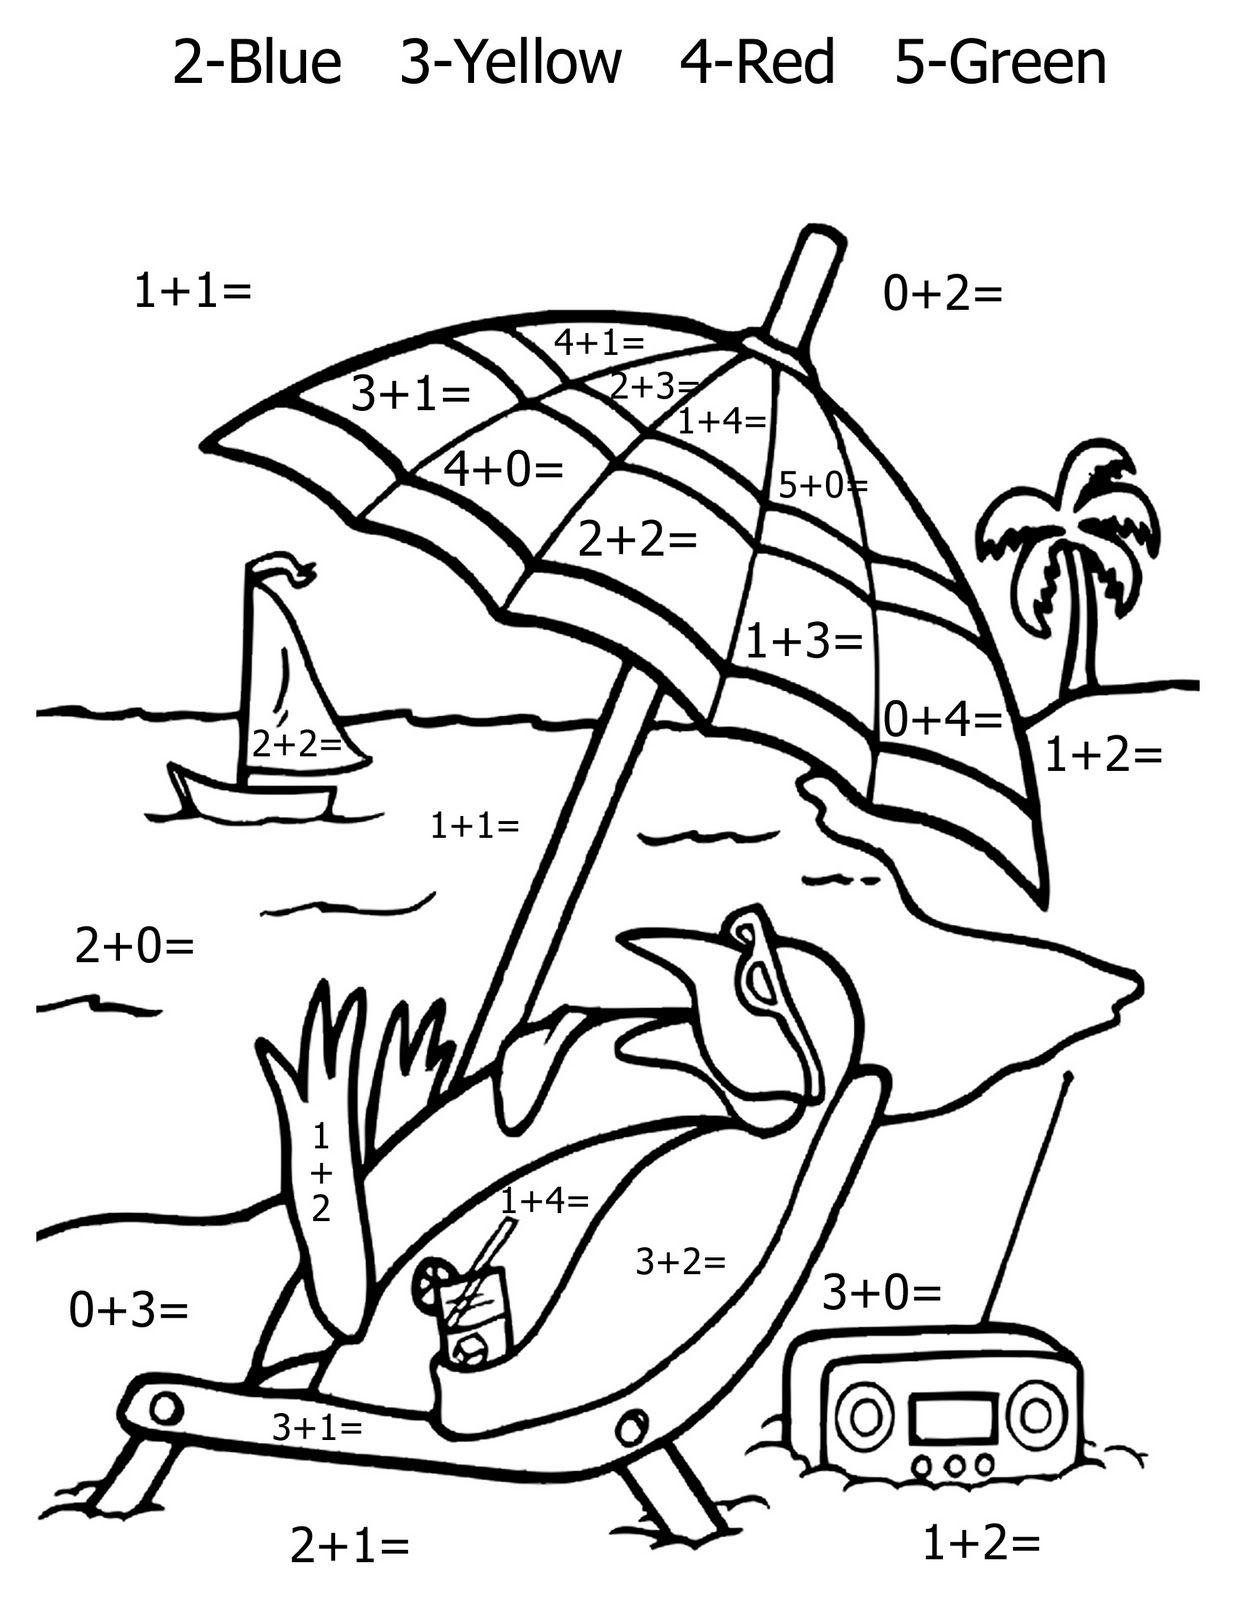 Free Printable Math Coloring Pages For Kids | Kinder Math - Free Printable Math Coloring Sheets